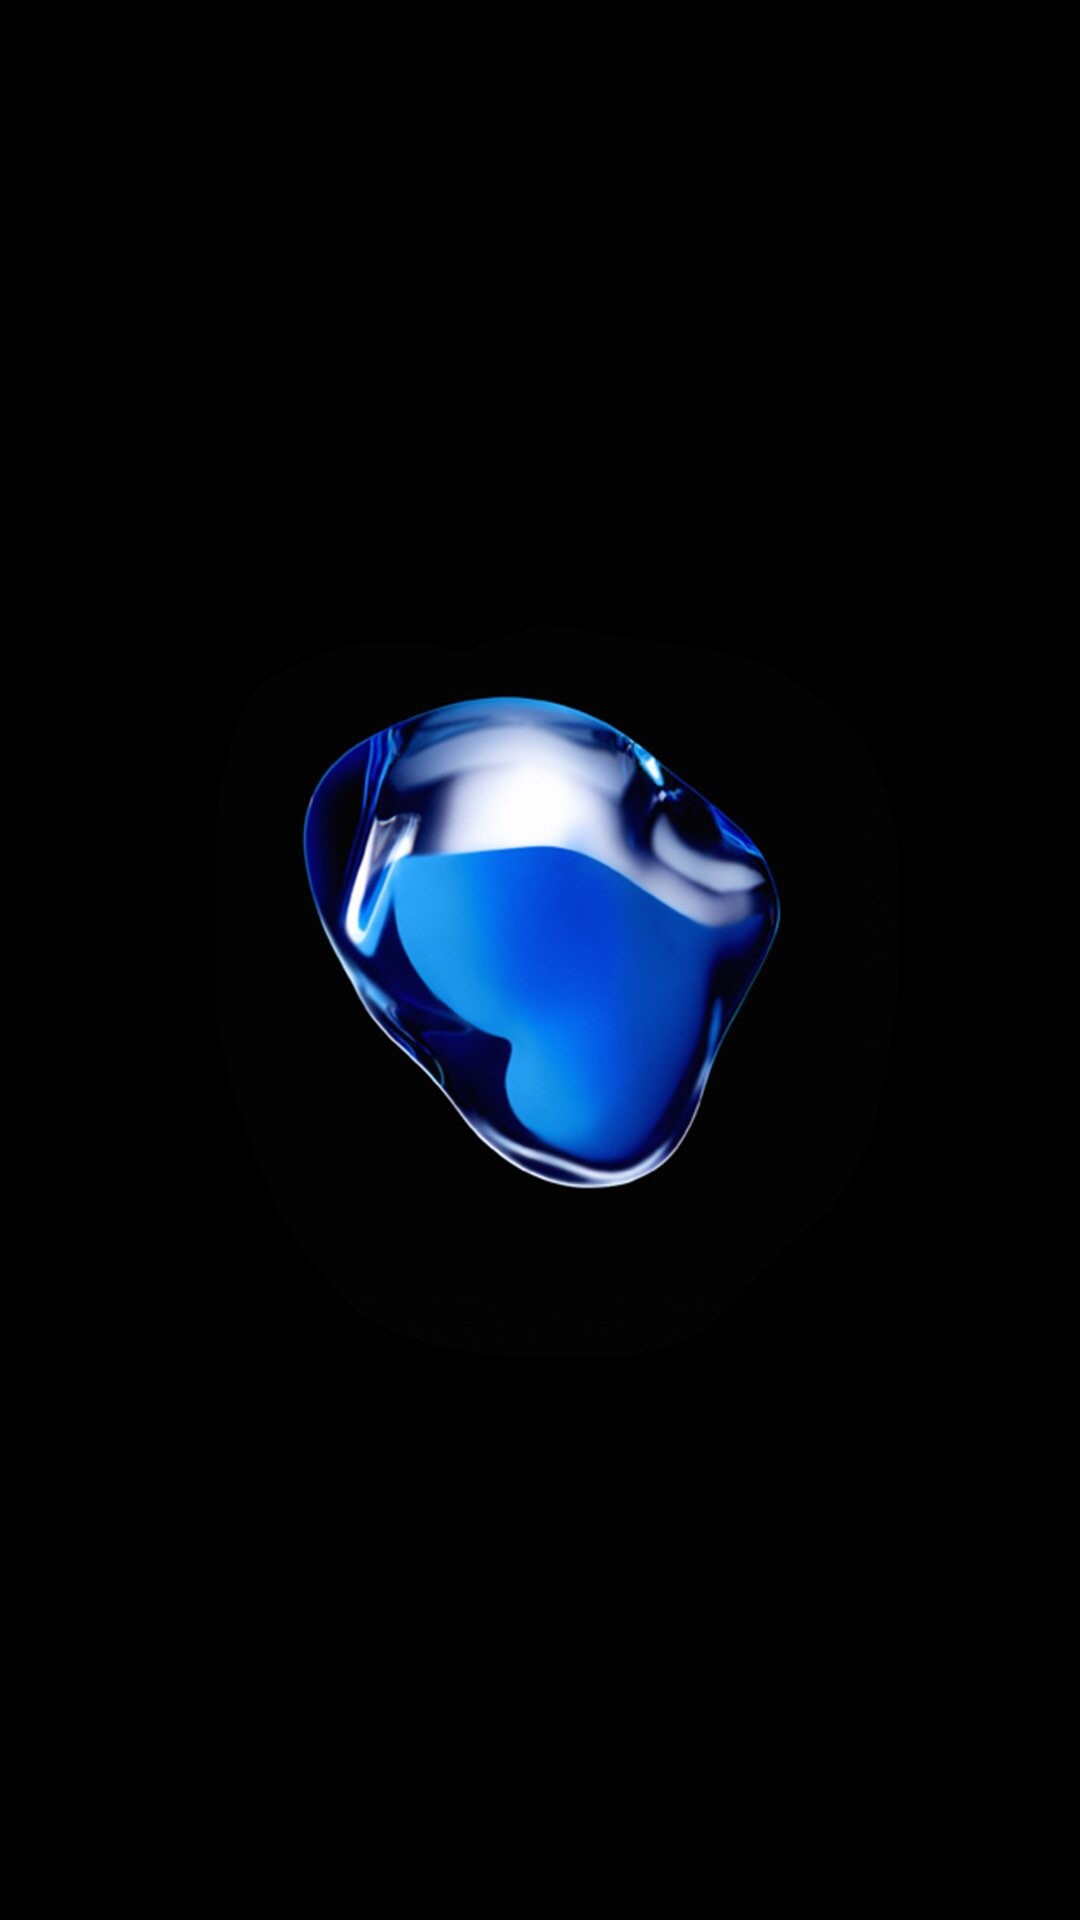 1080x1920 The Blue blob wallpaper in the iPhone 7 ads-img_0365.jpg